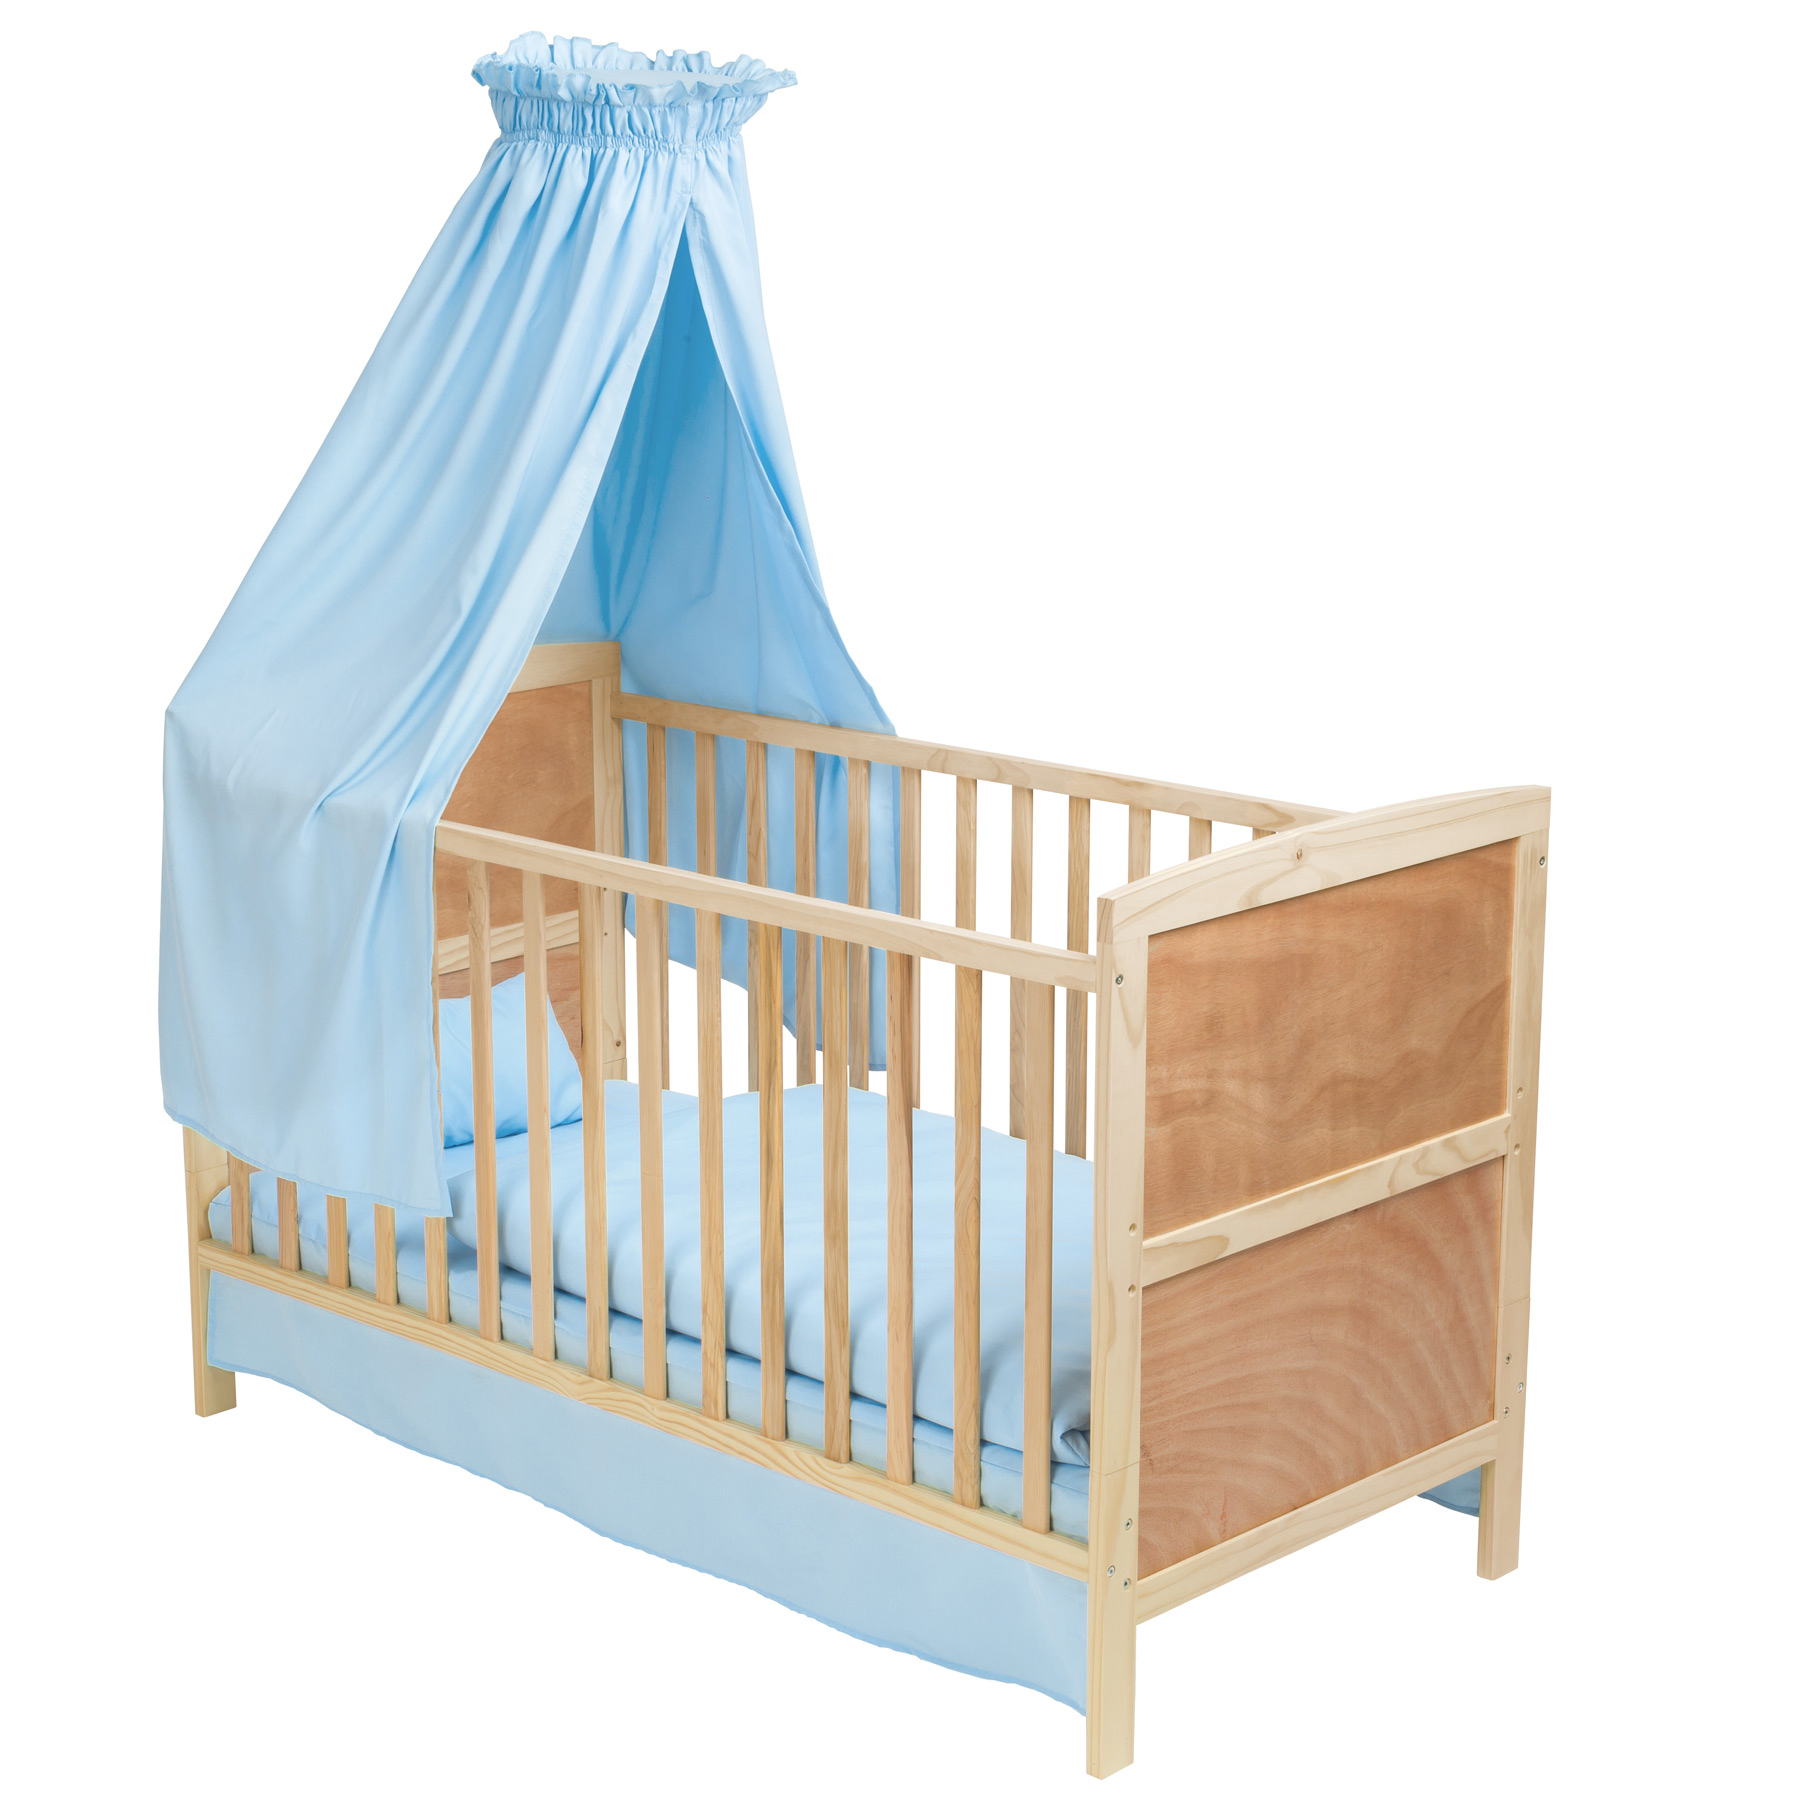 3 in 1 babybett mit himmel kinderbett h henverstellbar aus holz bettset blau ebay. Black Bedroom Furniture Sets. Home Design Ideas